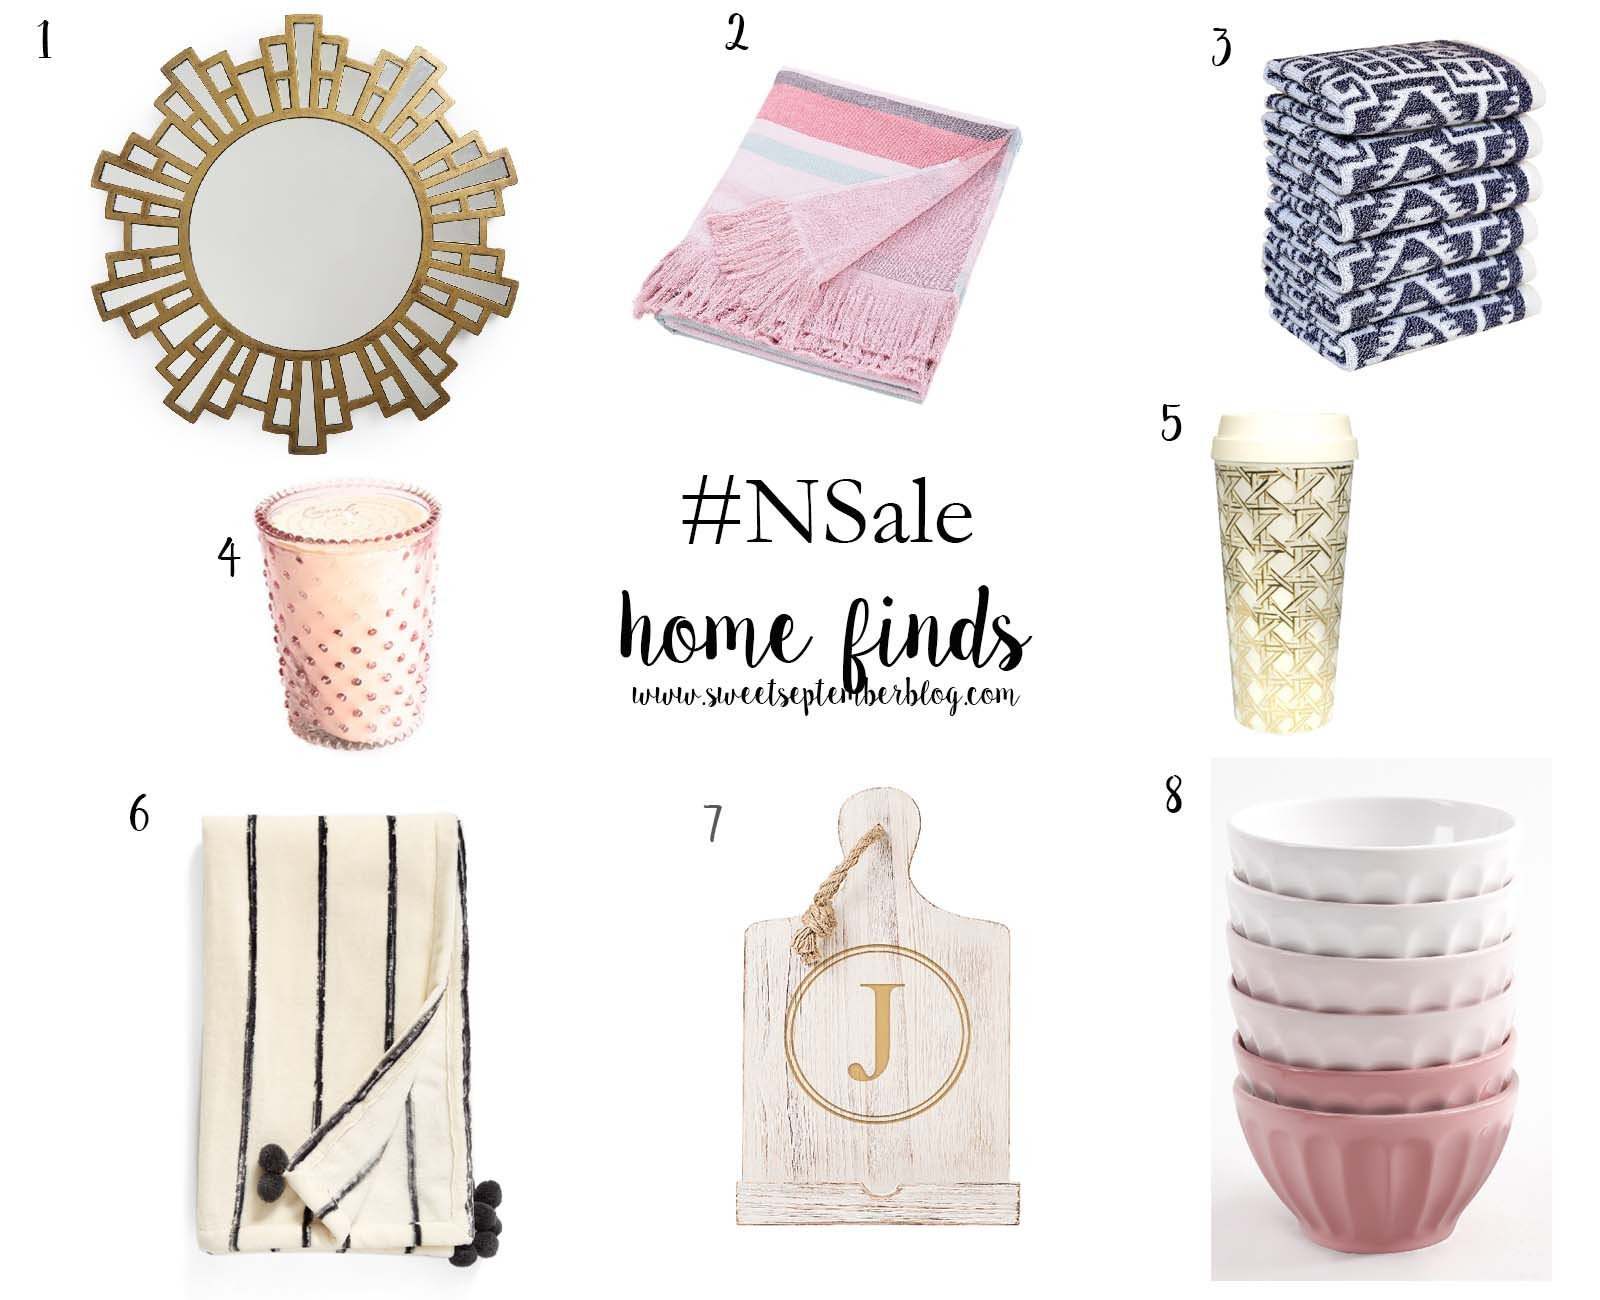 NSale Home Finds